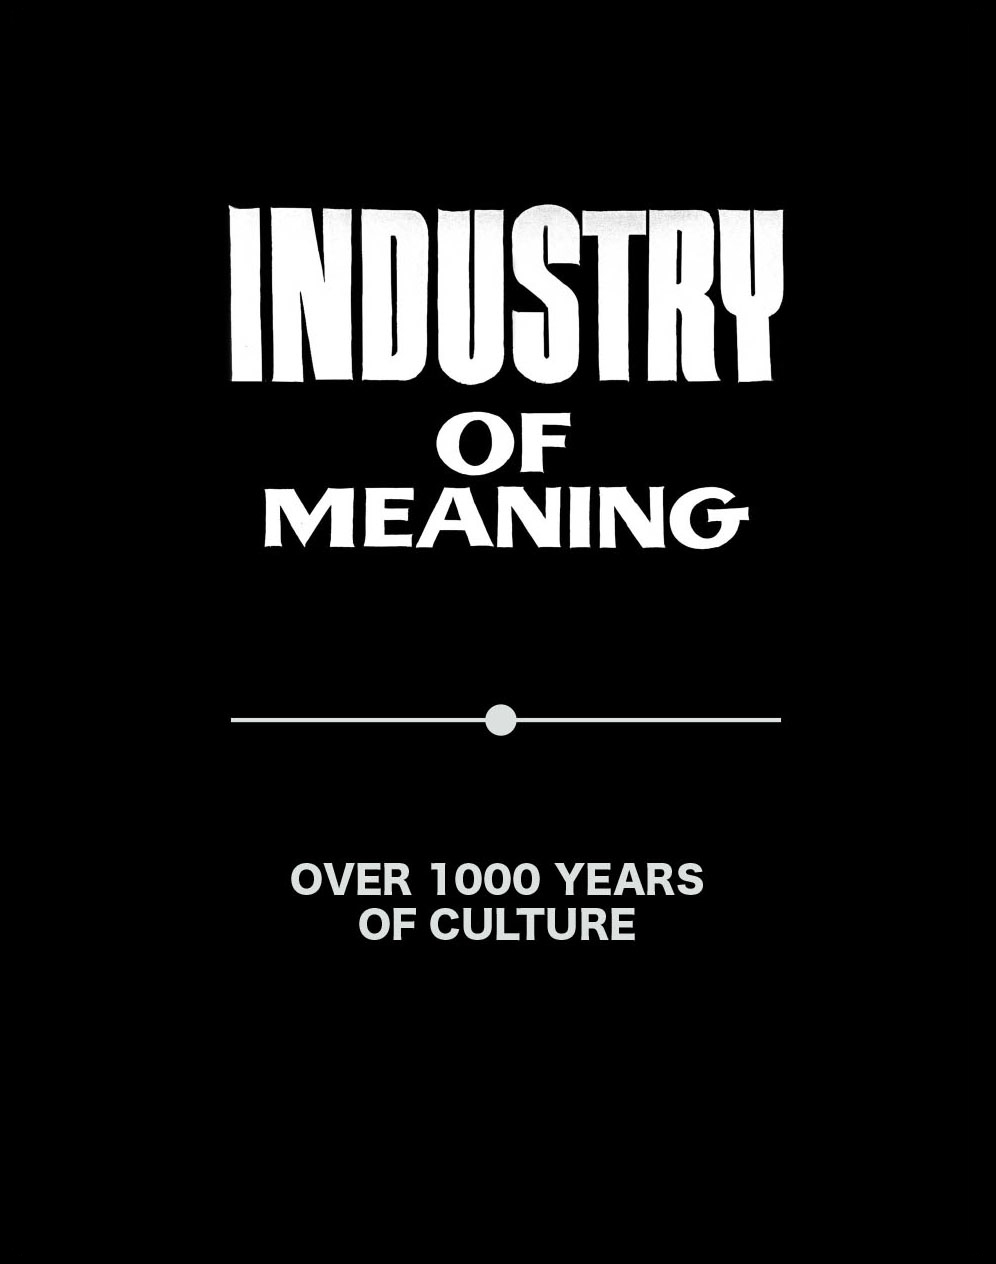 Industry-Of-Meaning-Flyer.jpg